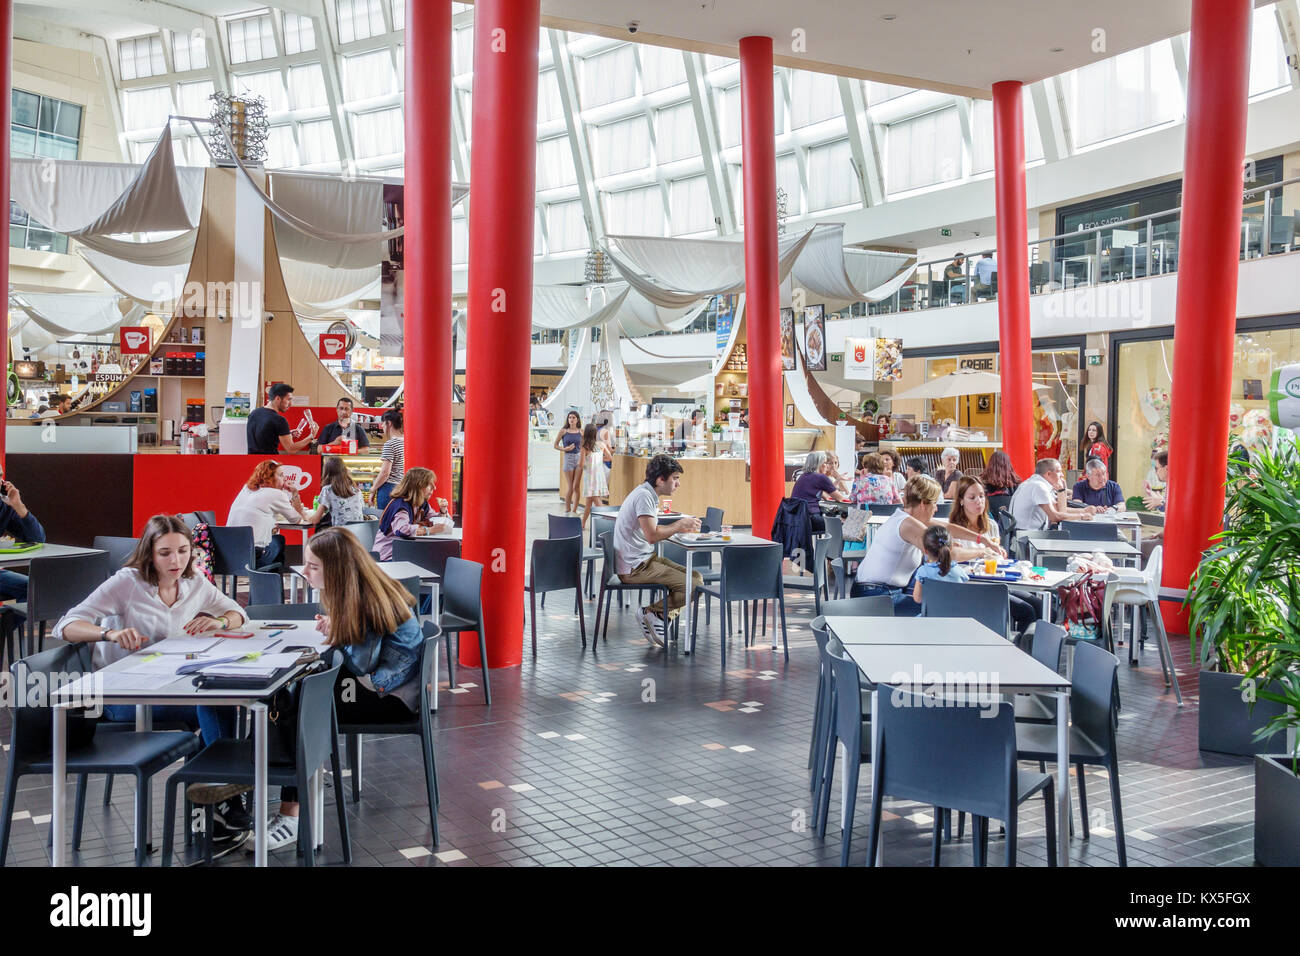 Sunshine Plaza Food Court